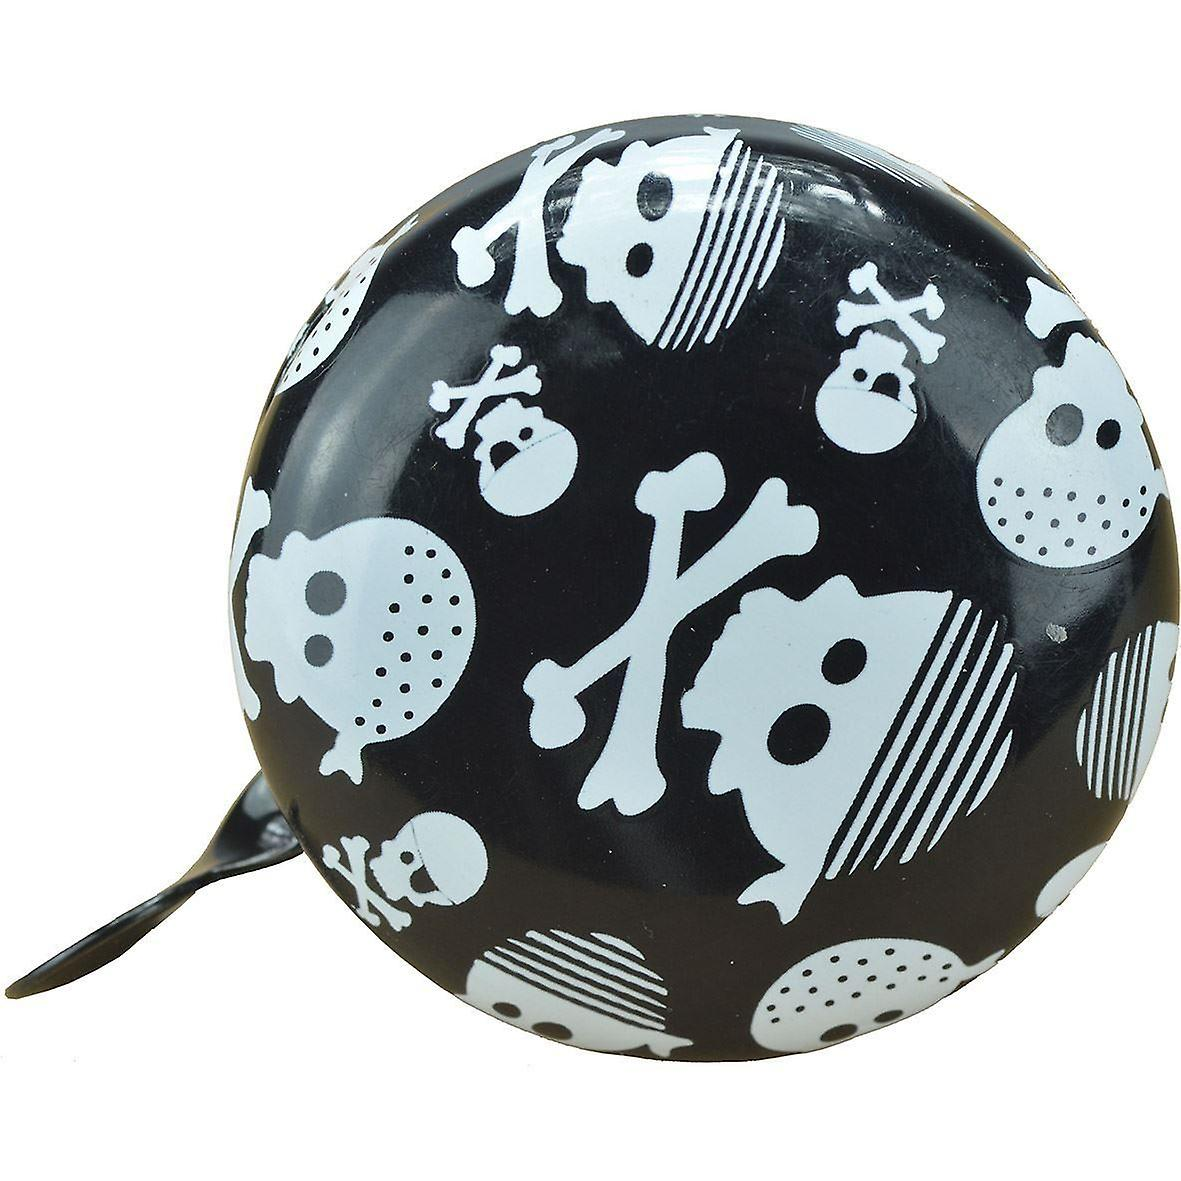 Kiddimoto Large or Small Cycle Bell Skullz